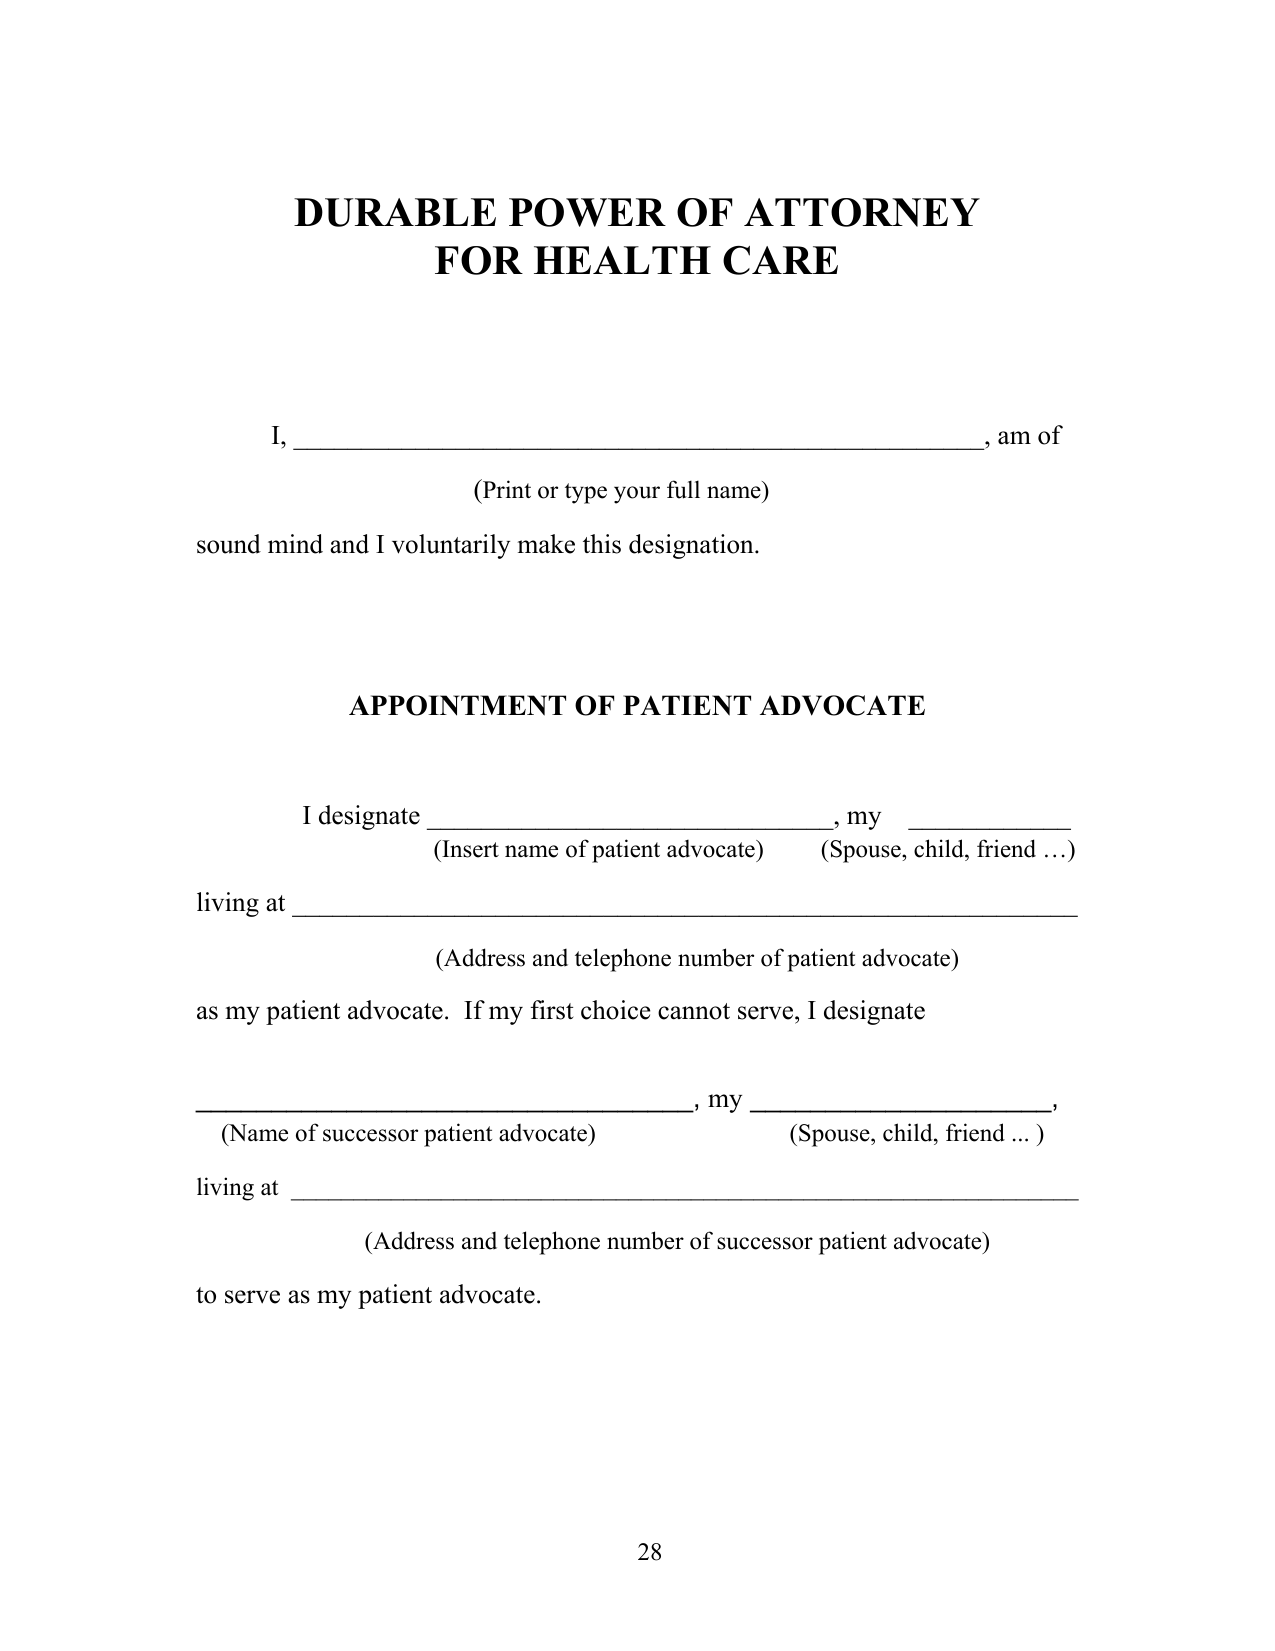 Download Michigan Living Will Form Advance Directive